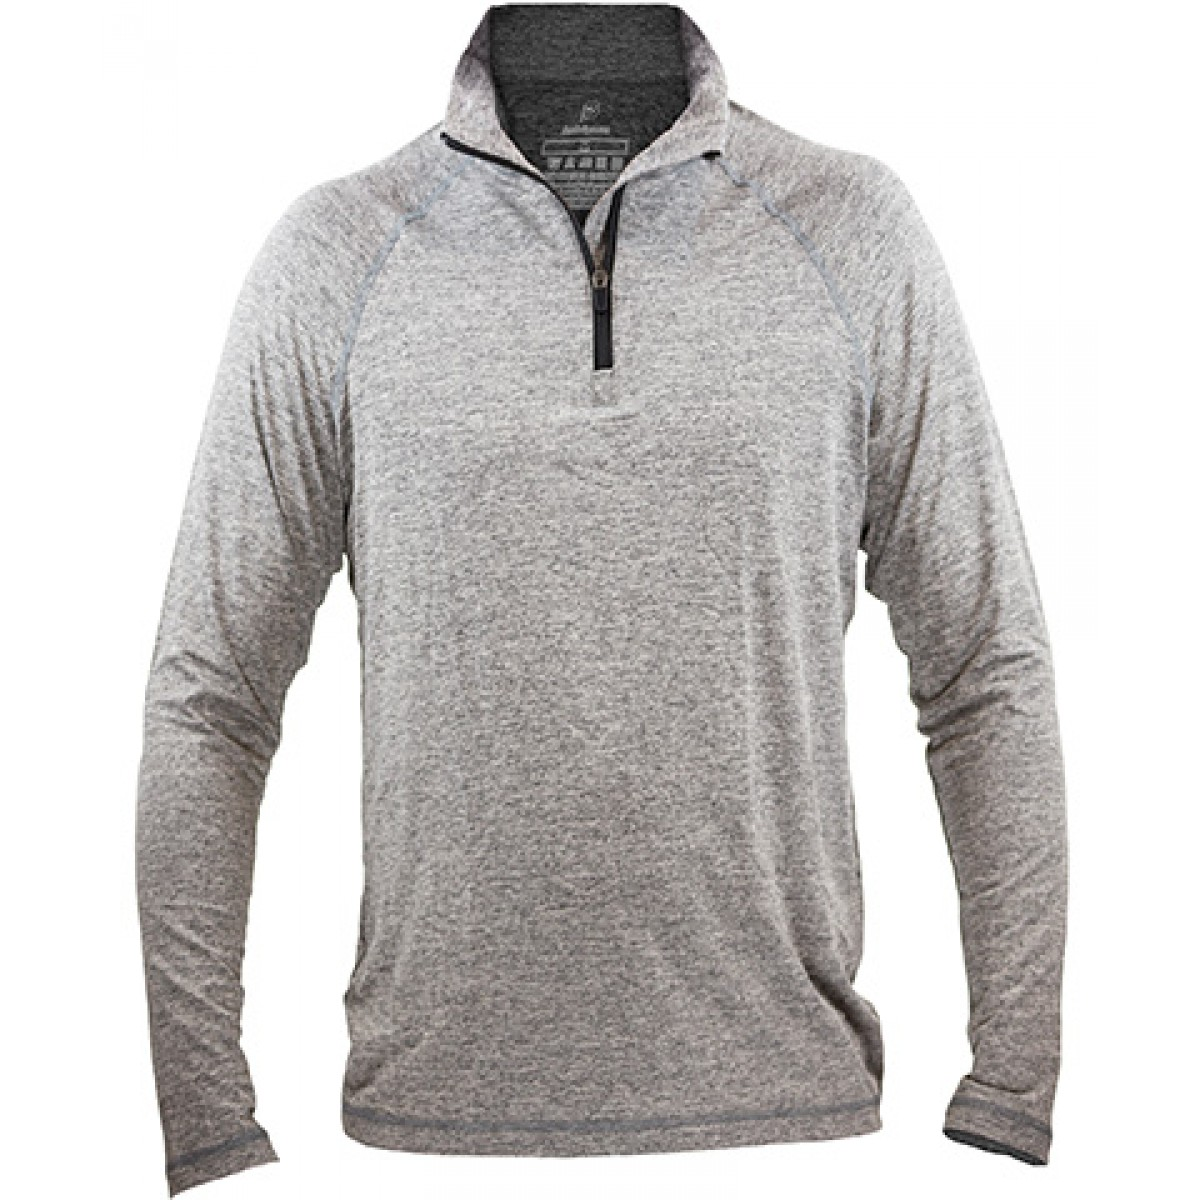 Fine Designs Blend 1/4-Zip Pullover-Gray -S